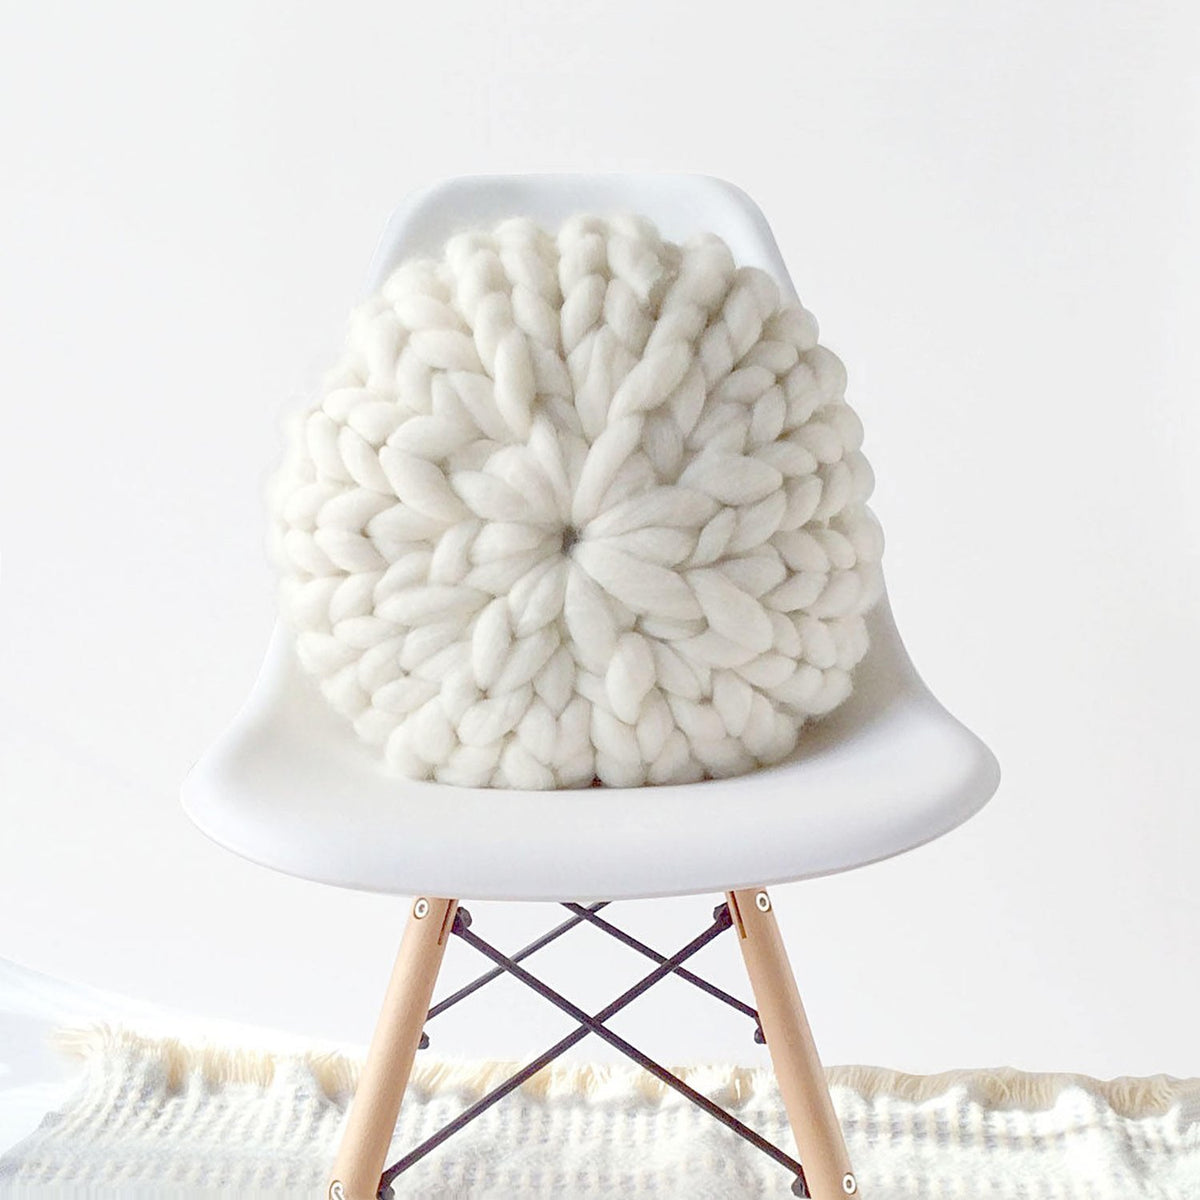 Hand Knitting 101 - Round Pillows